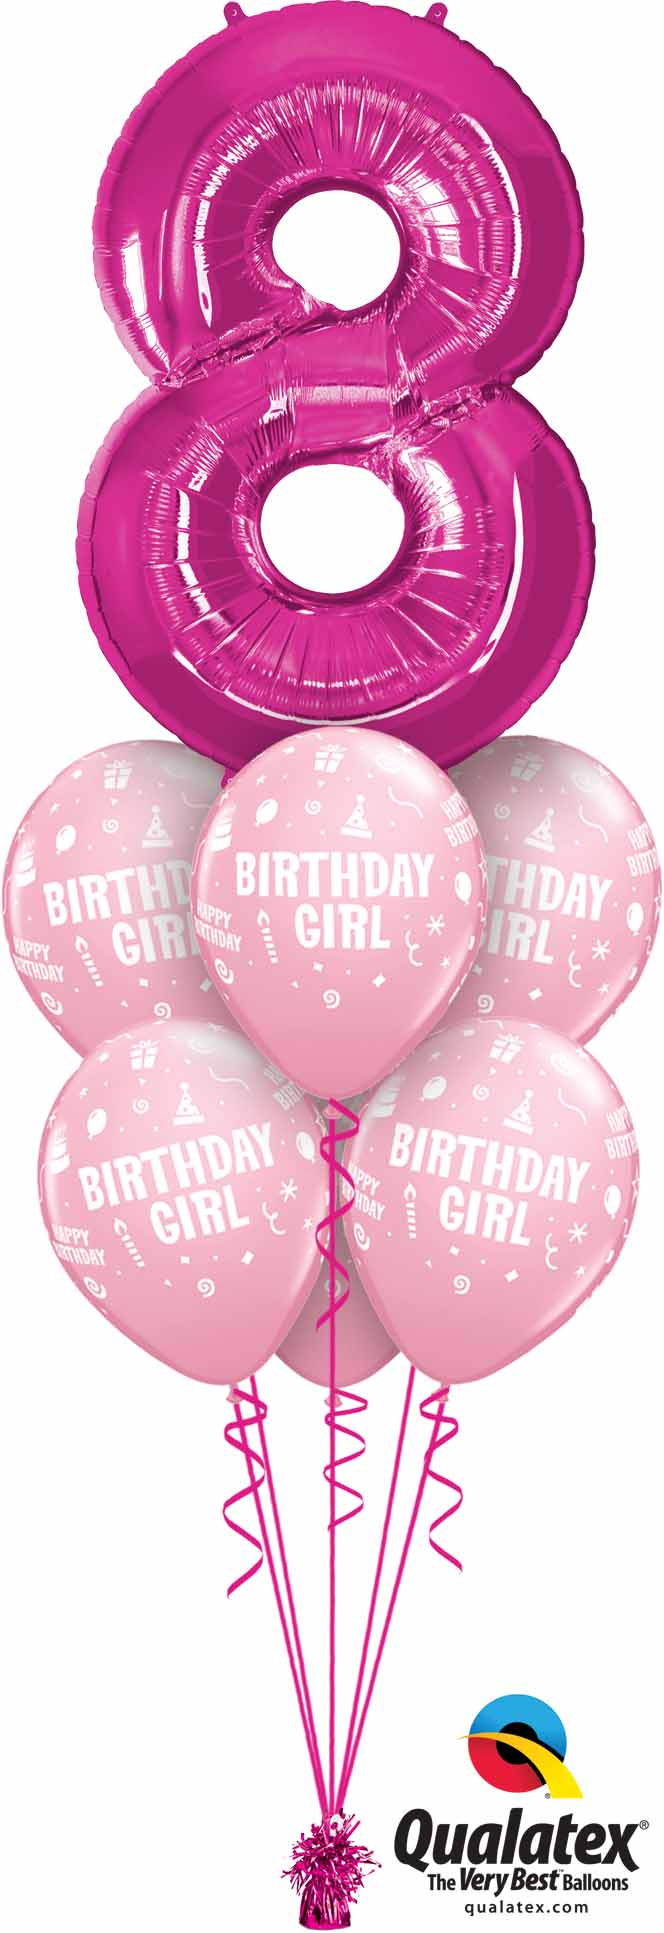 30596 17921 8th Birthday Girl Luxury